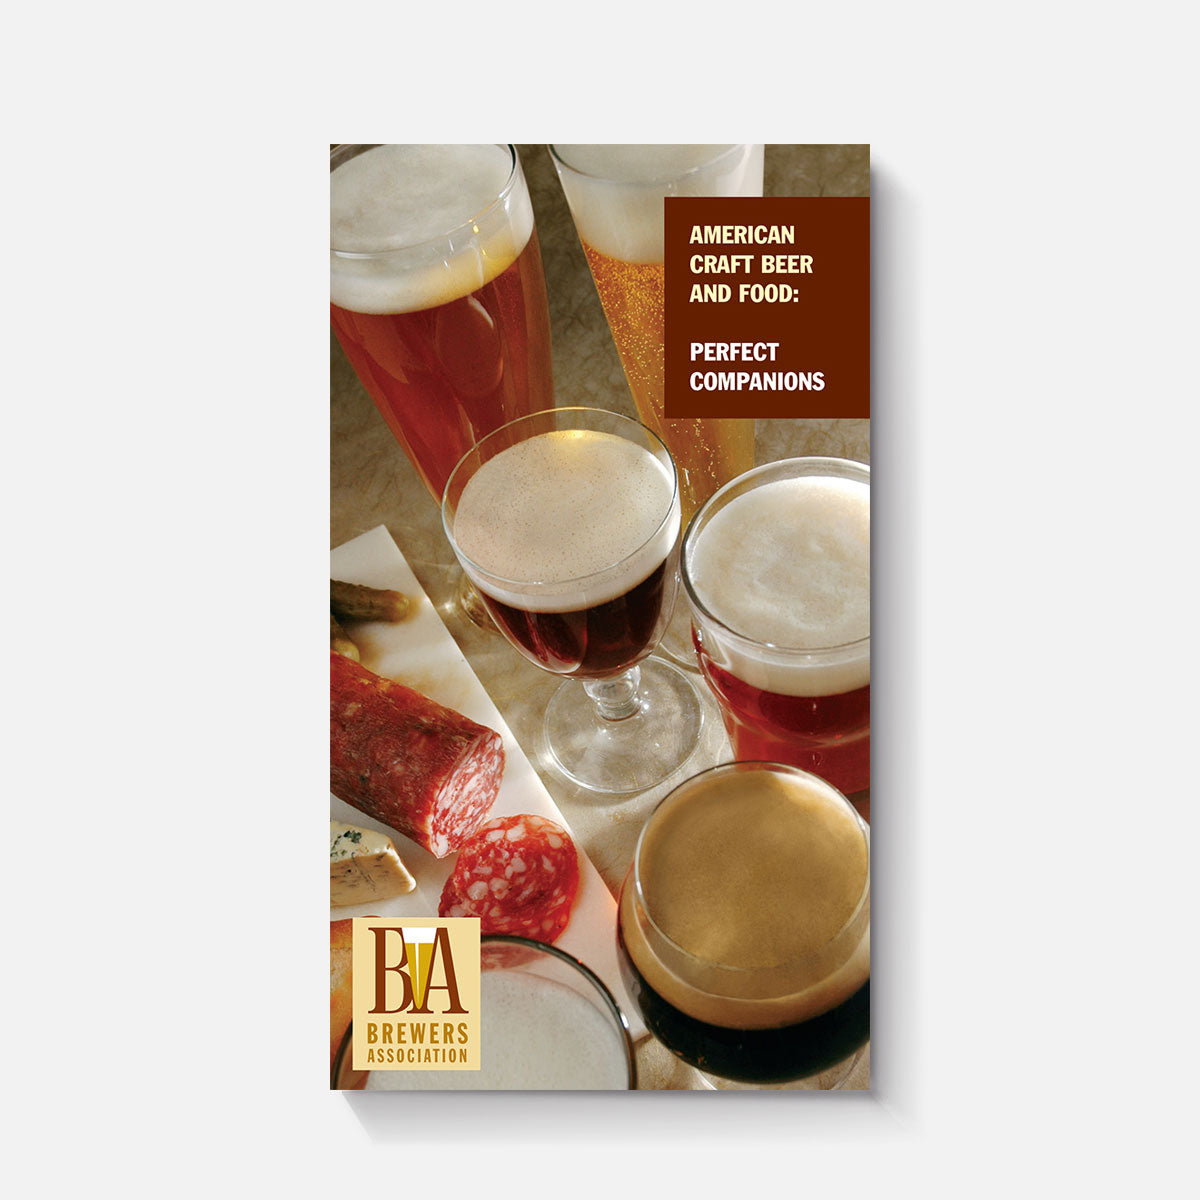 American craft beer and food guide brewers publications for Craft beer and food